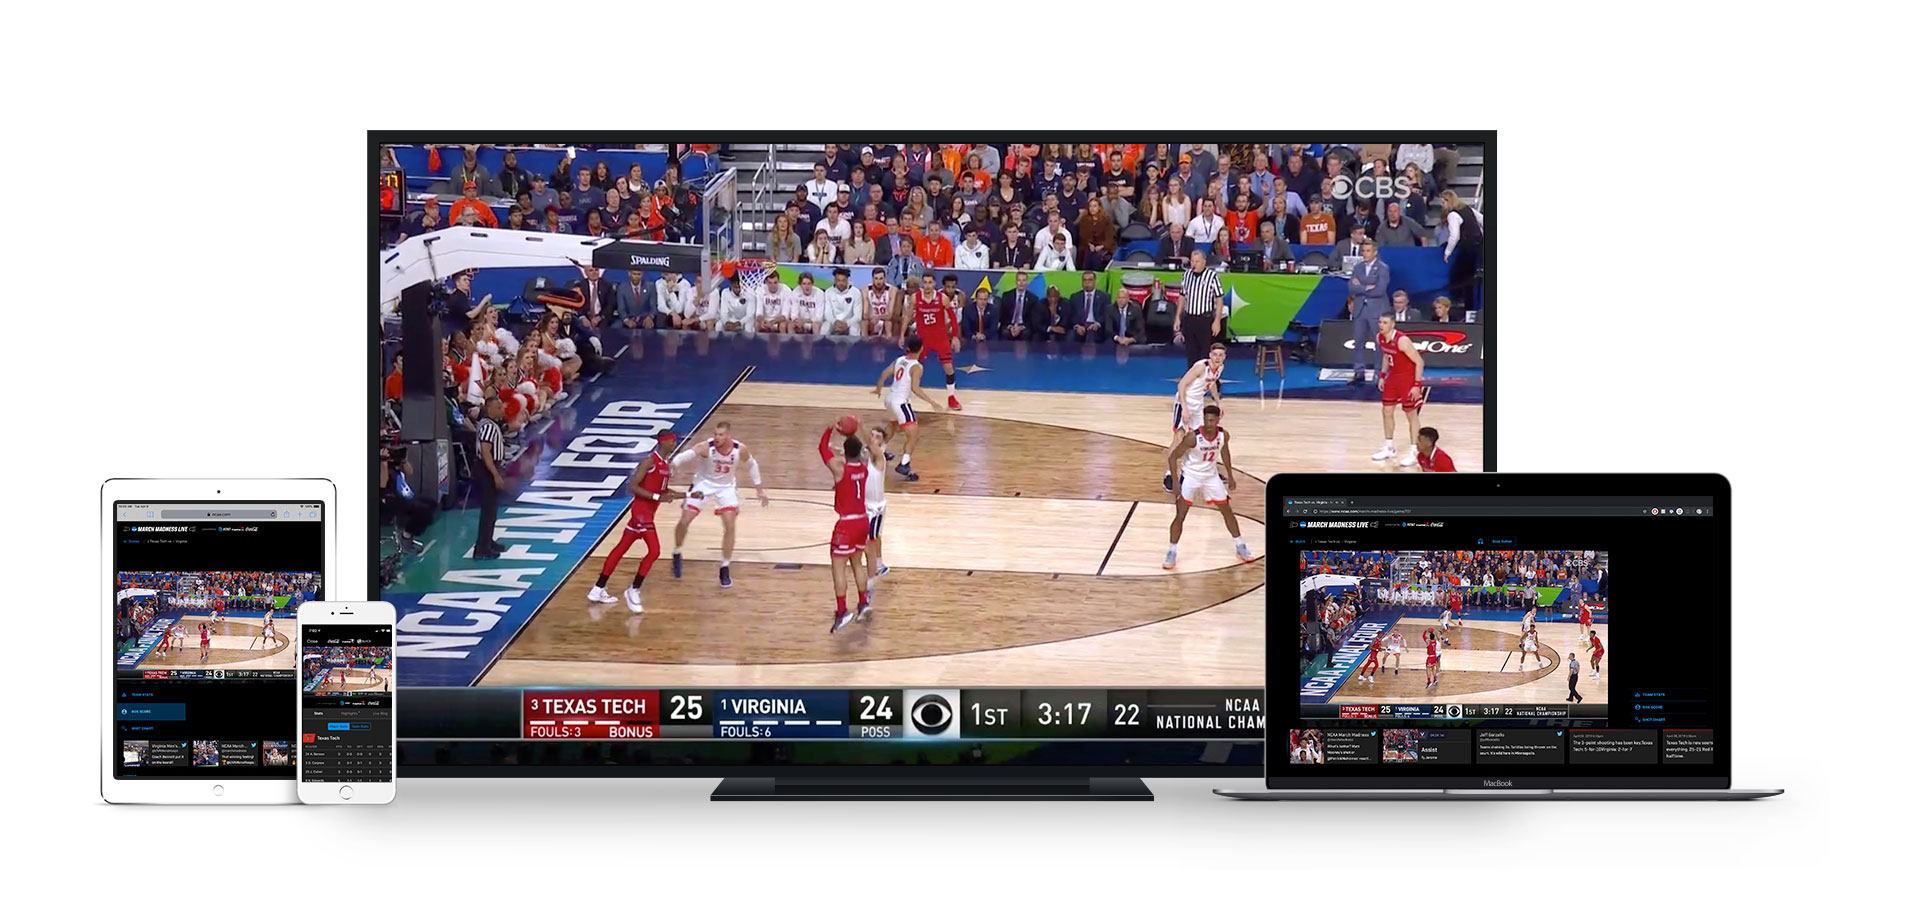 2019 March Madness Live devices